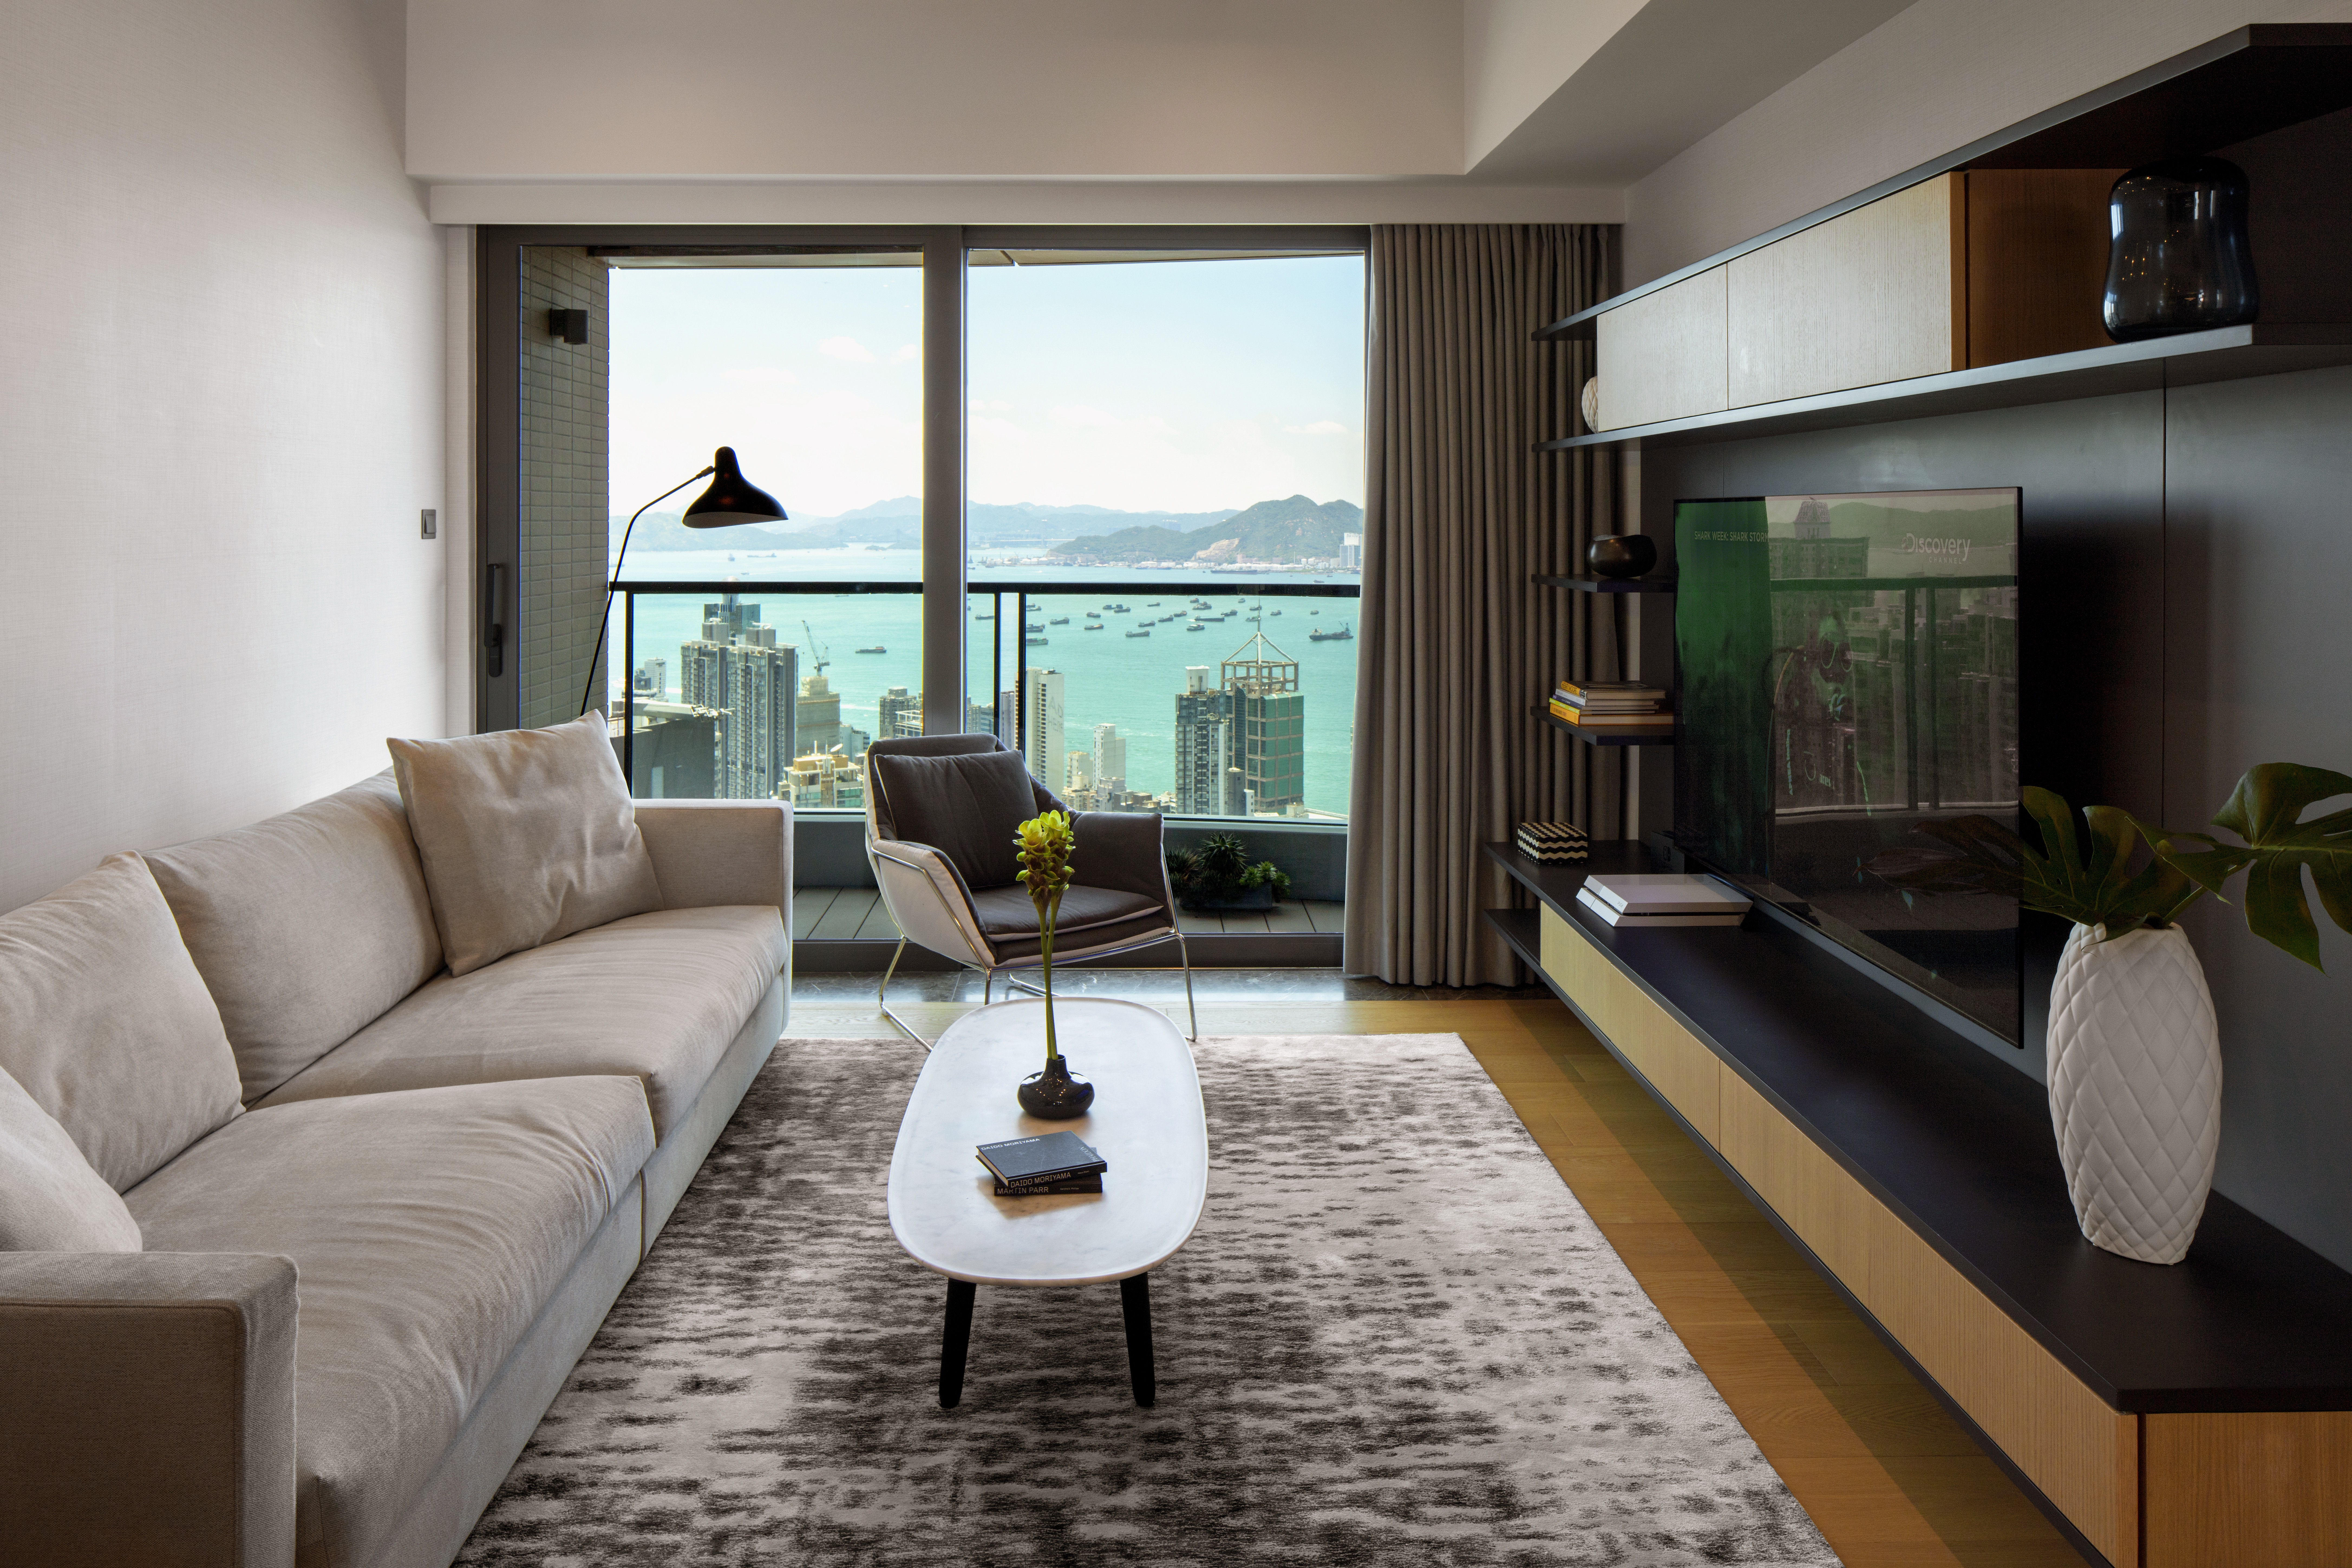 How A Hong Kong Apartment Went From Show Flat To Home